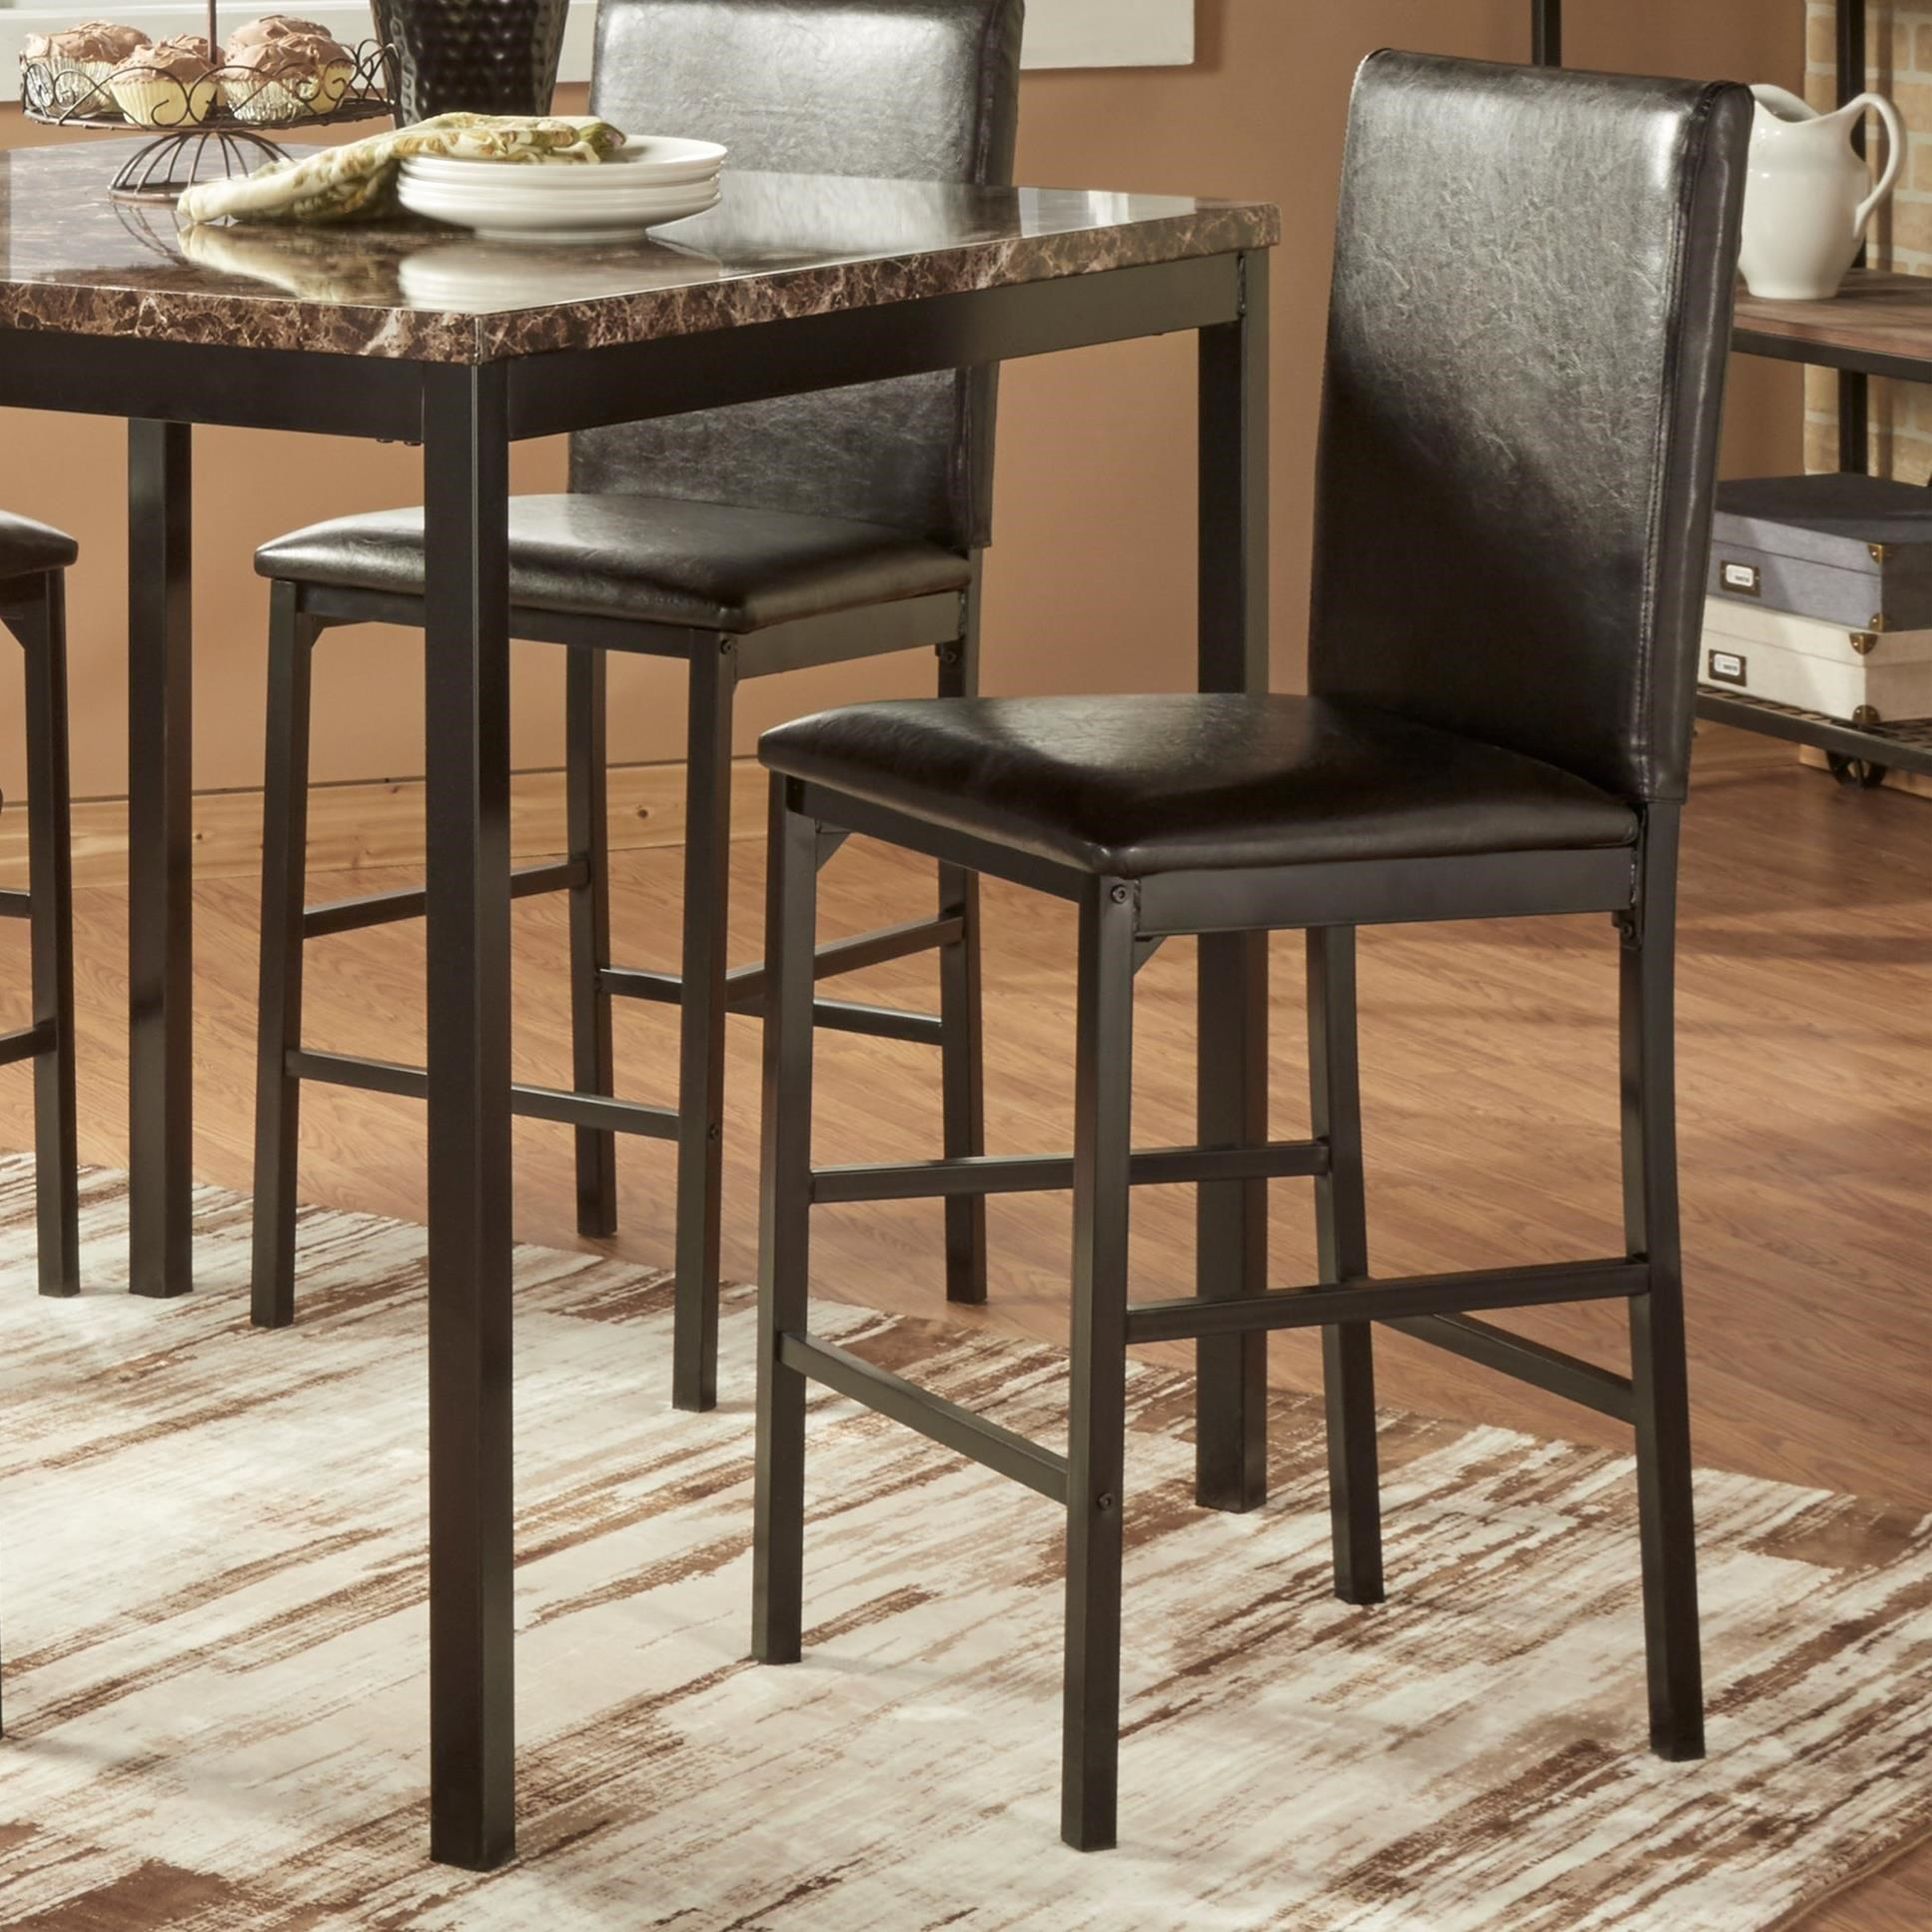 Homelegance Tempe Casual Upholstered Counter Height Stool